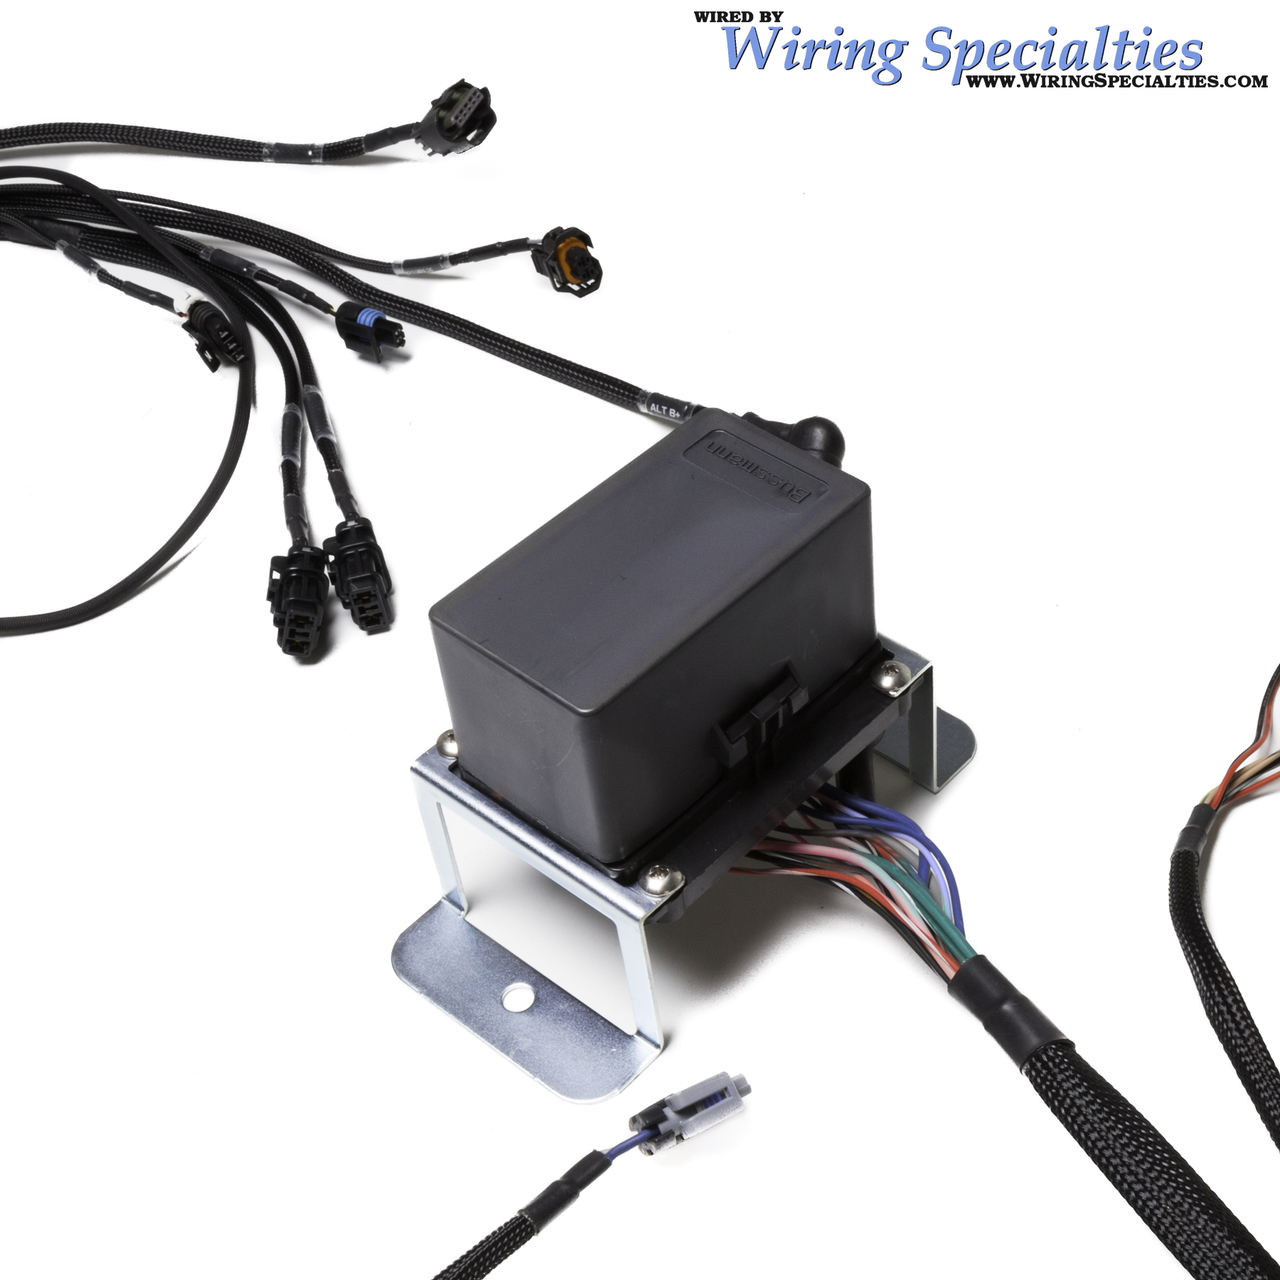 hight resolution of wiring specialties ls2 dbw wiring harness for bmw e30 pro series